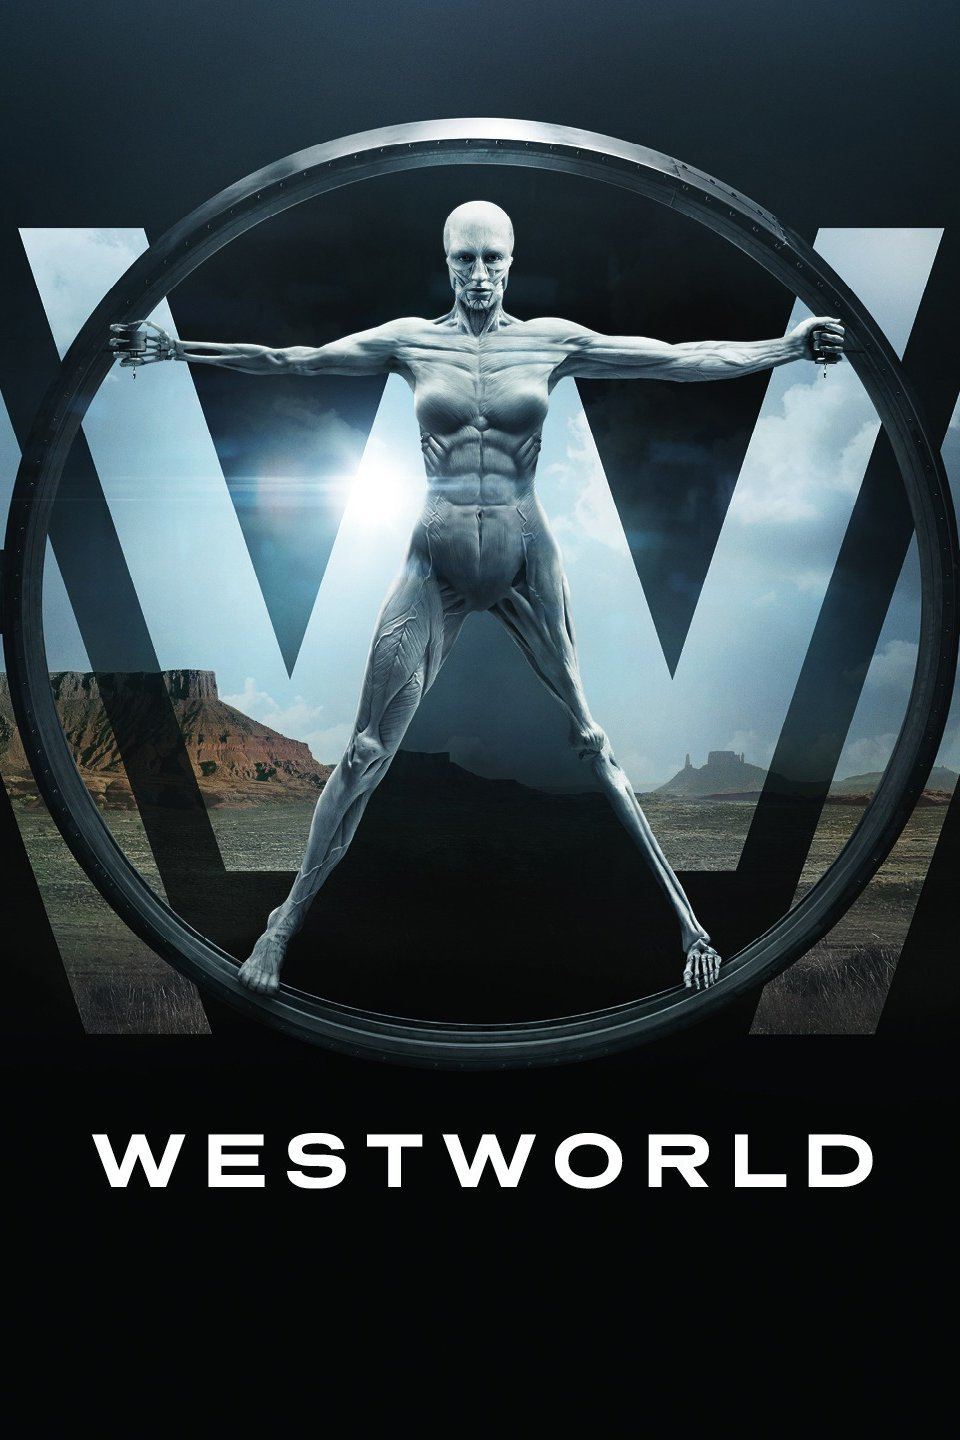 Westworld Season 1 Download WEB-DL Episode 9